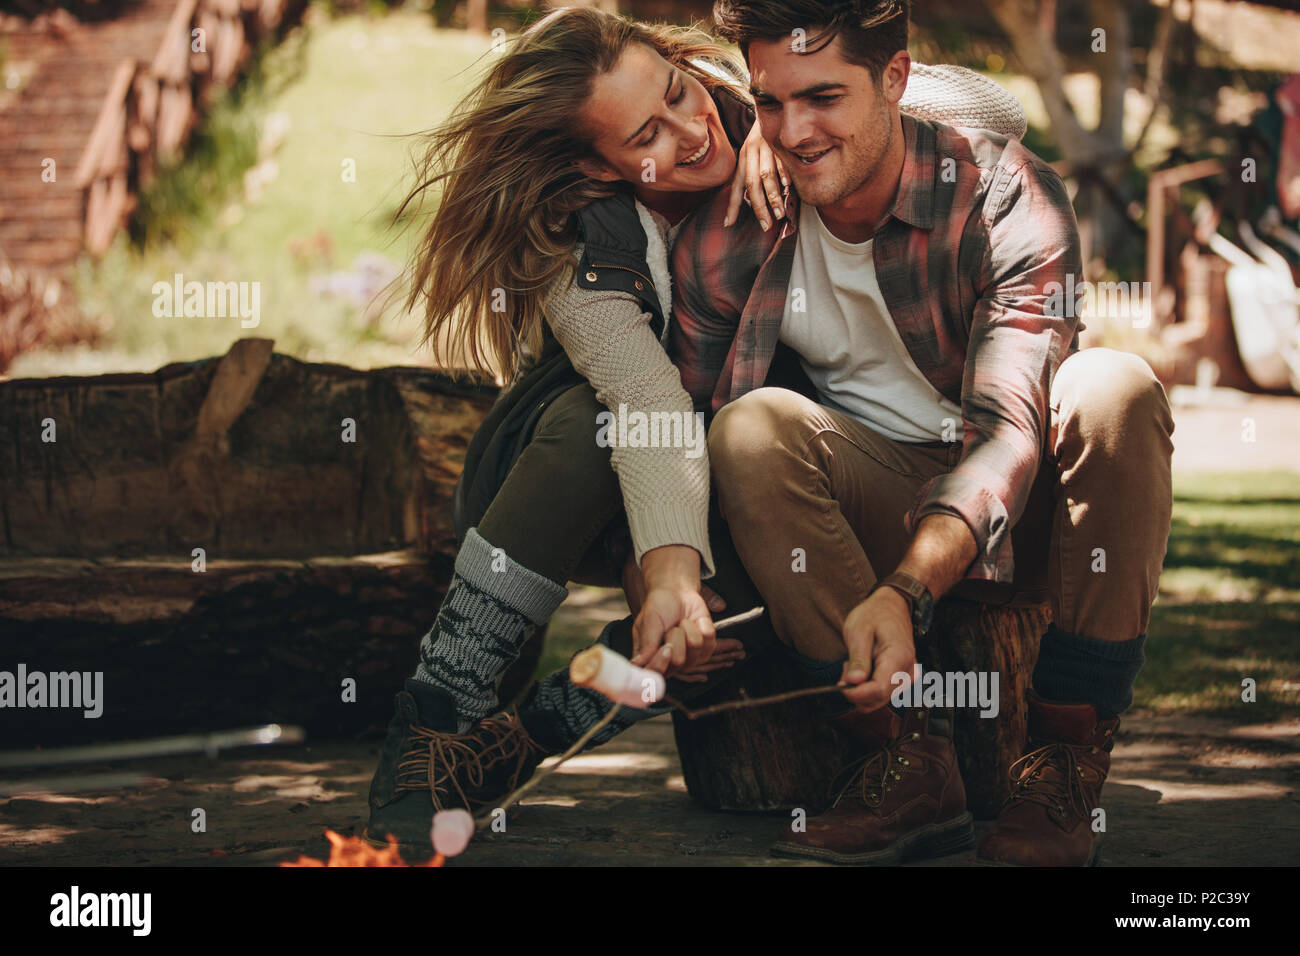 Happy man and woman sitting by fire and roasting marshmallows on sticks at campsite. Romantic couple having a great time on their camping. - Stock Image